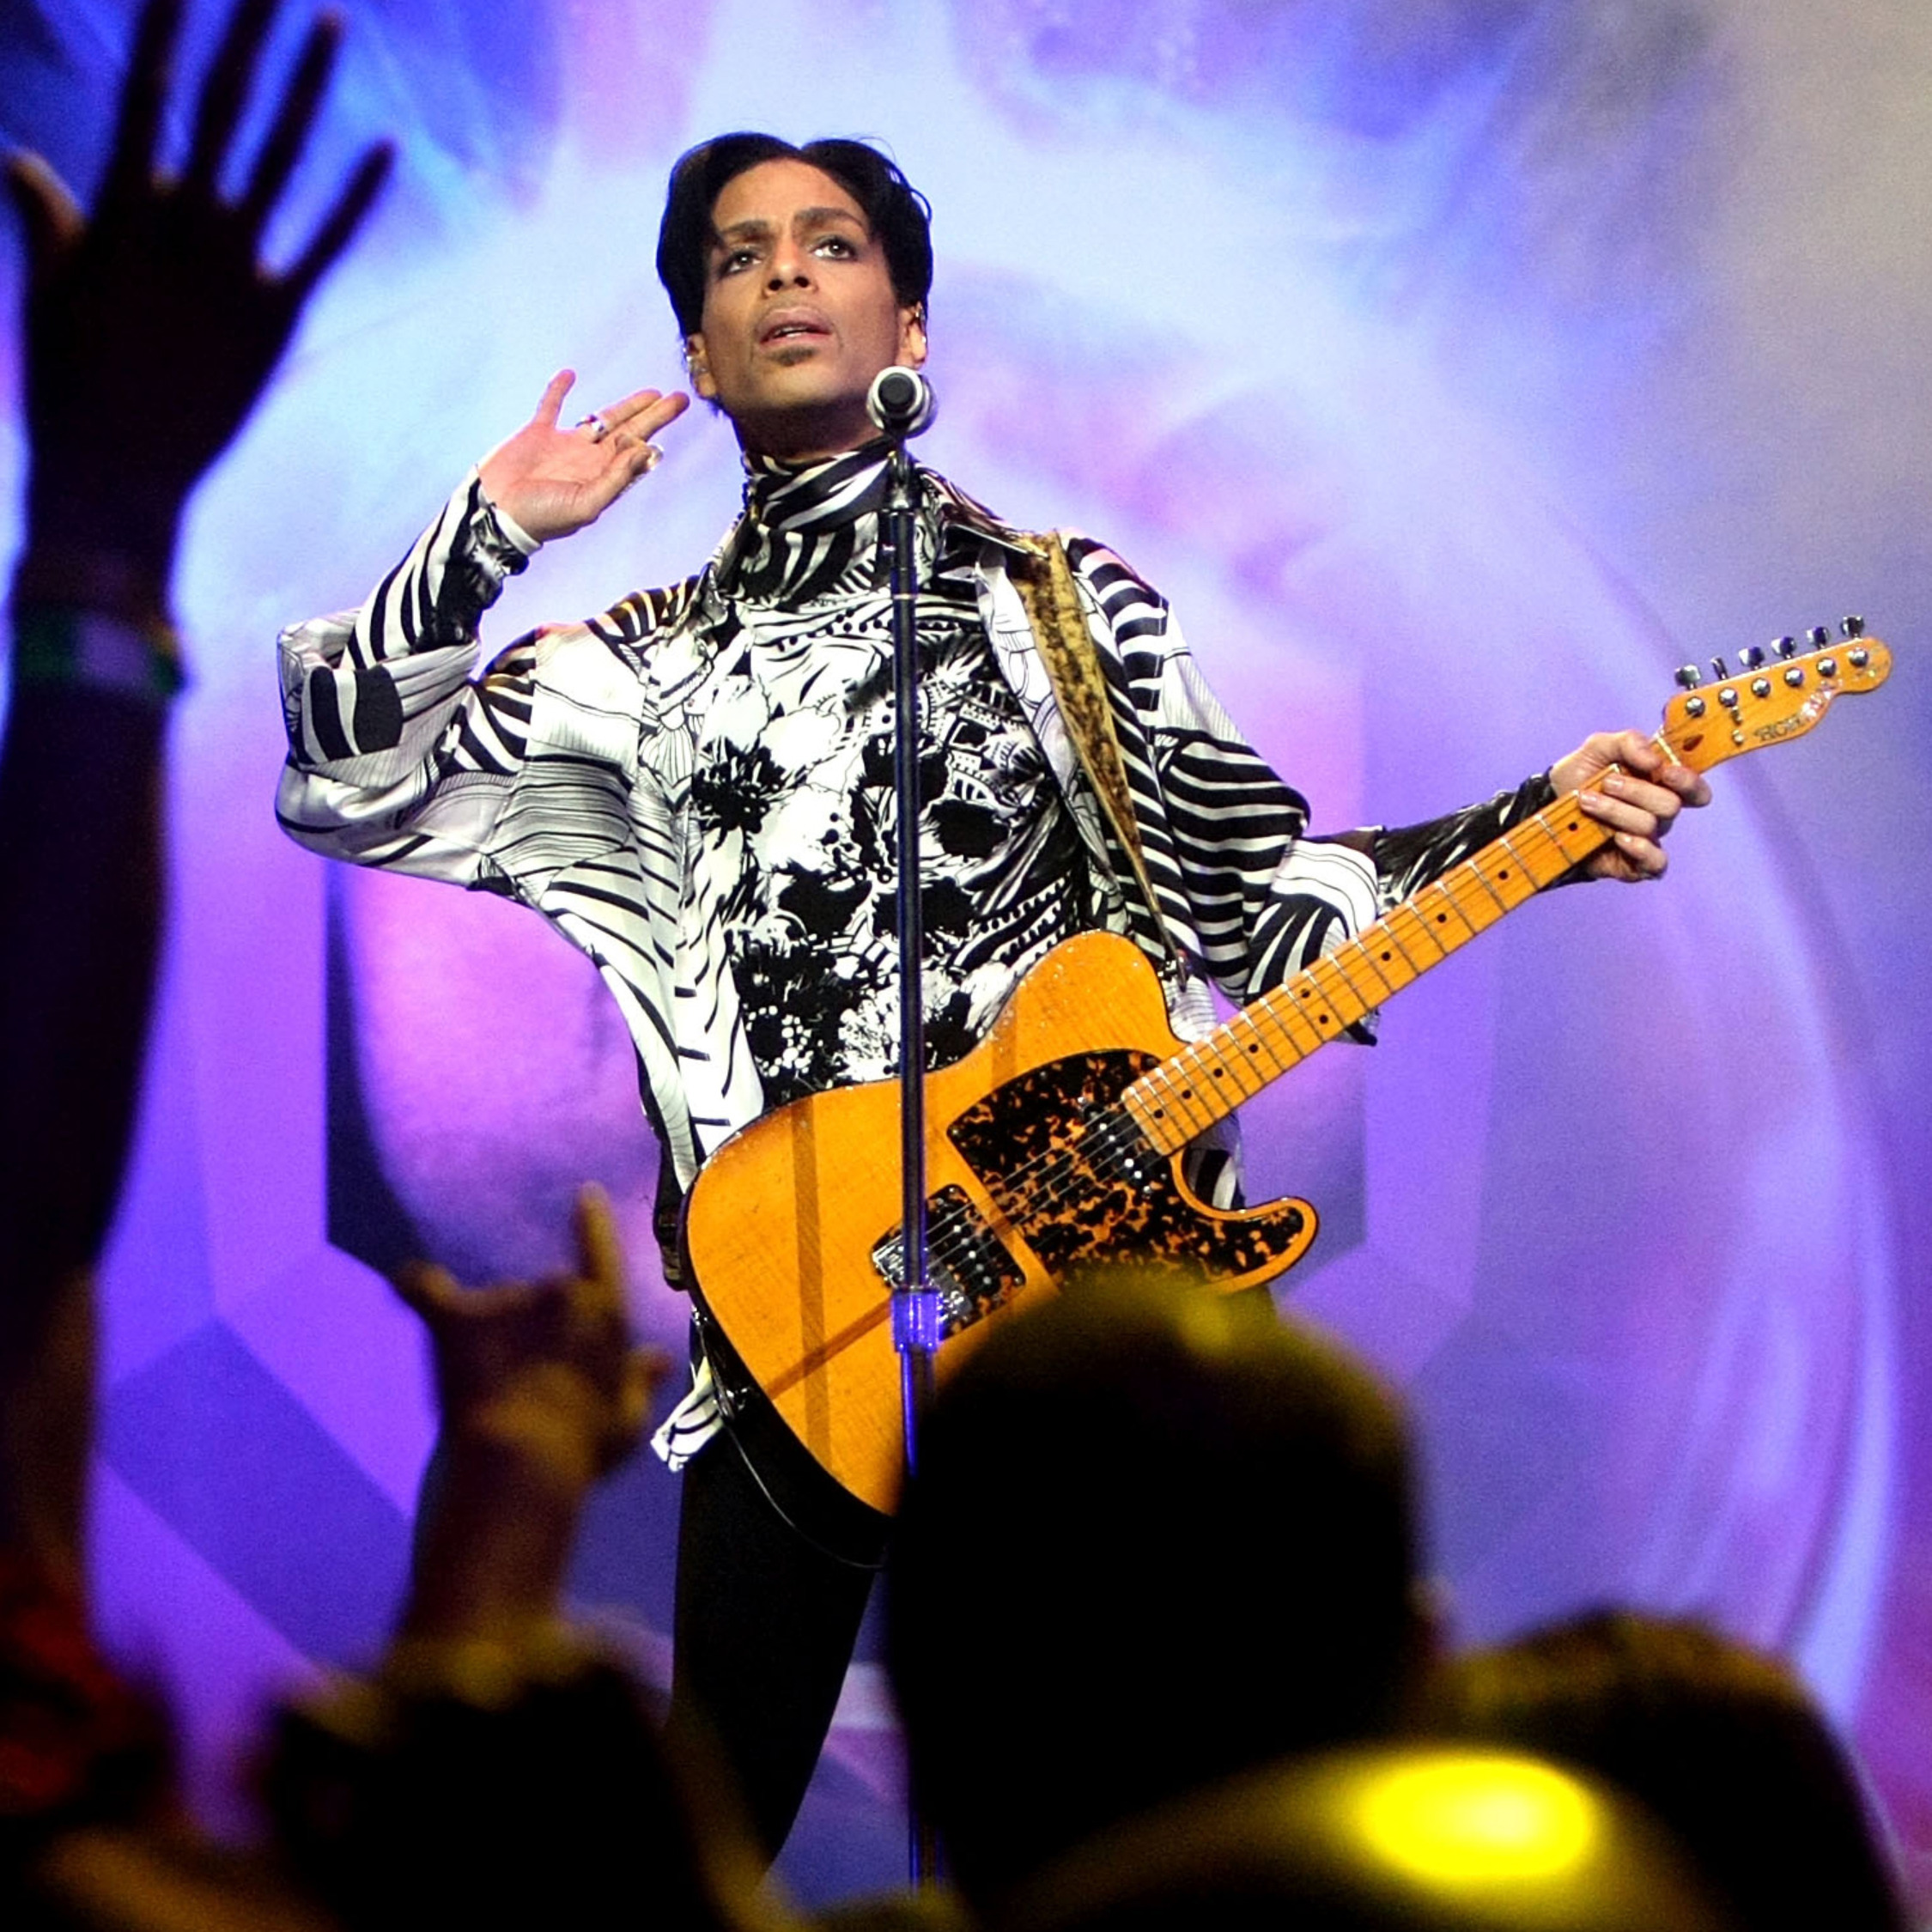 Prince & 3rd Eye Girl LIVE Free To Watch Video